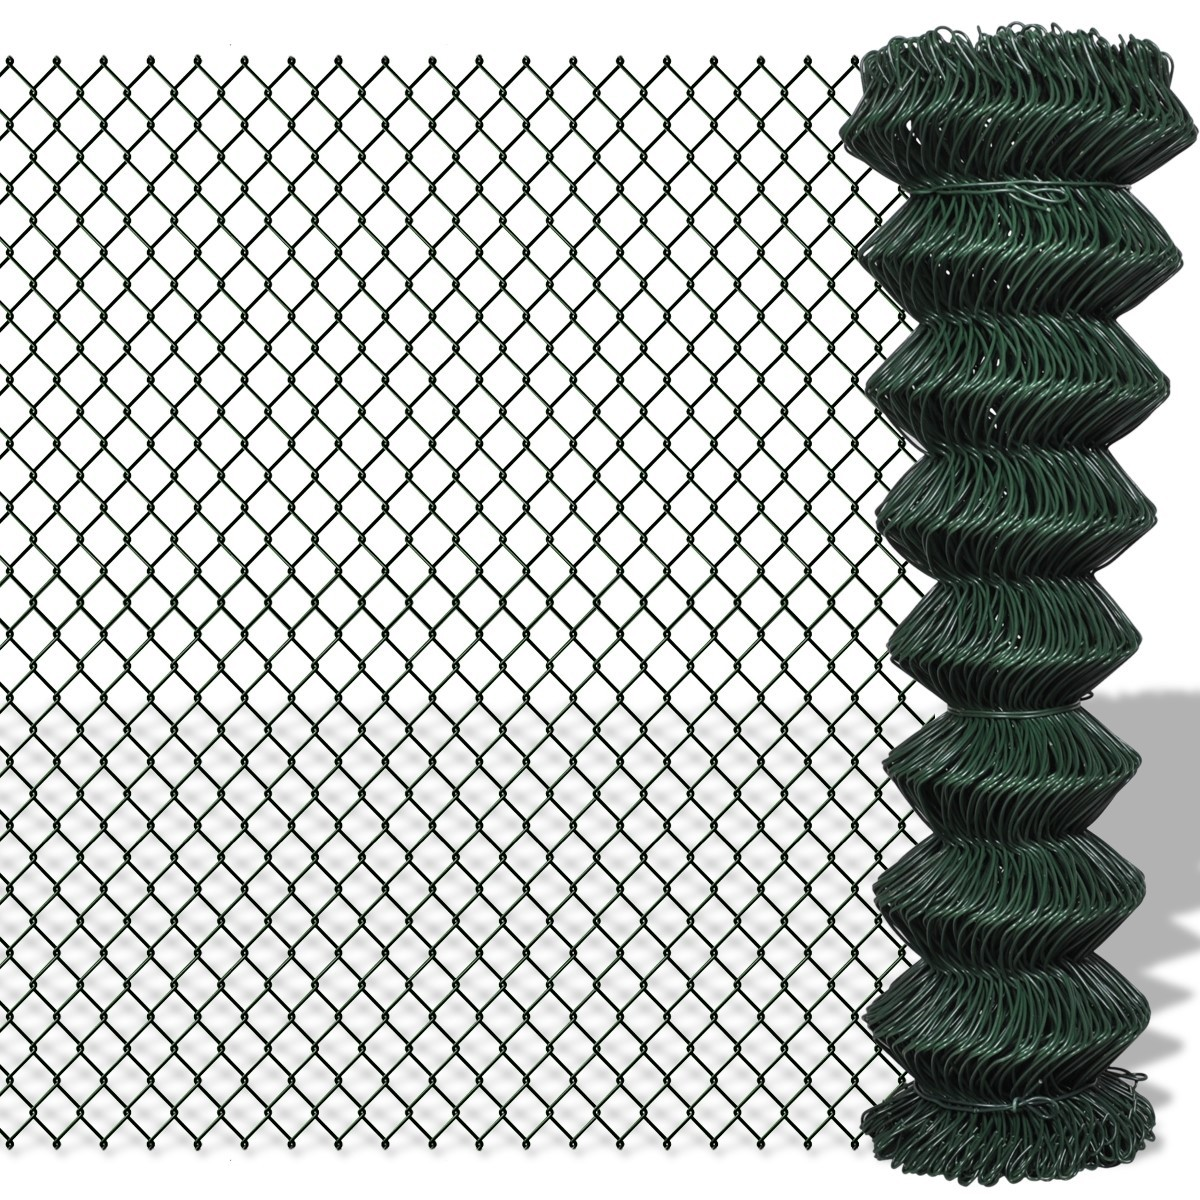 Online B/C Mailing Sales - DIY Chain Link Fence